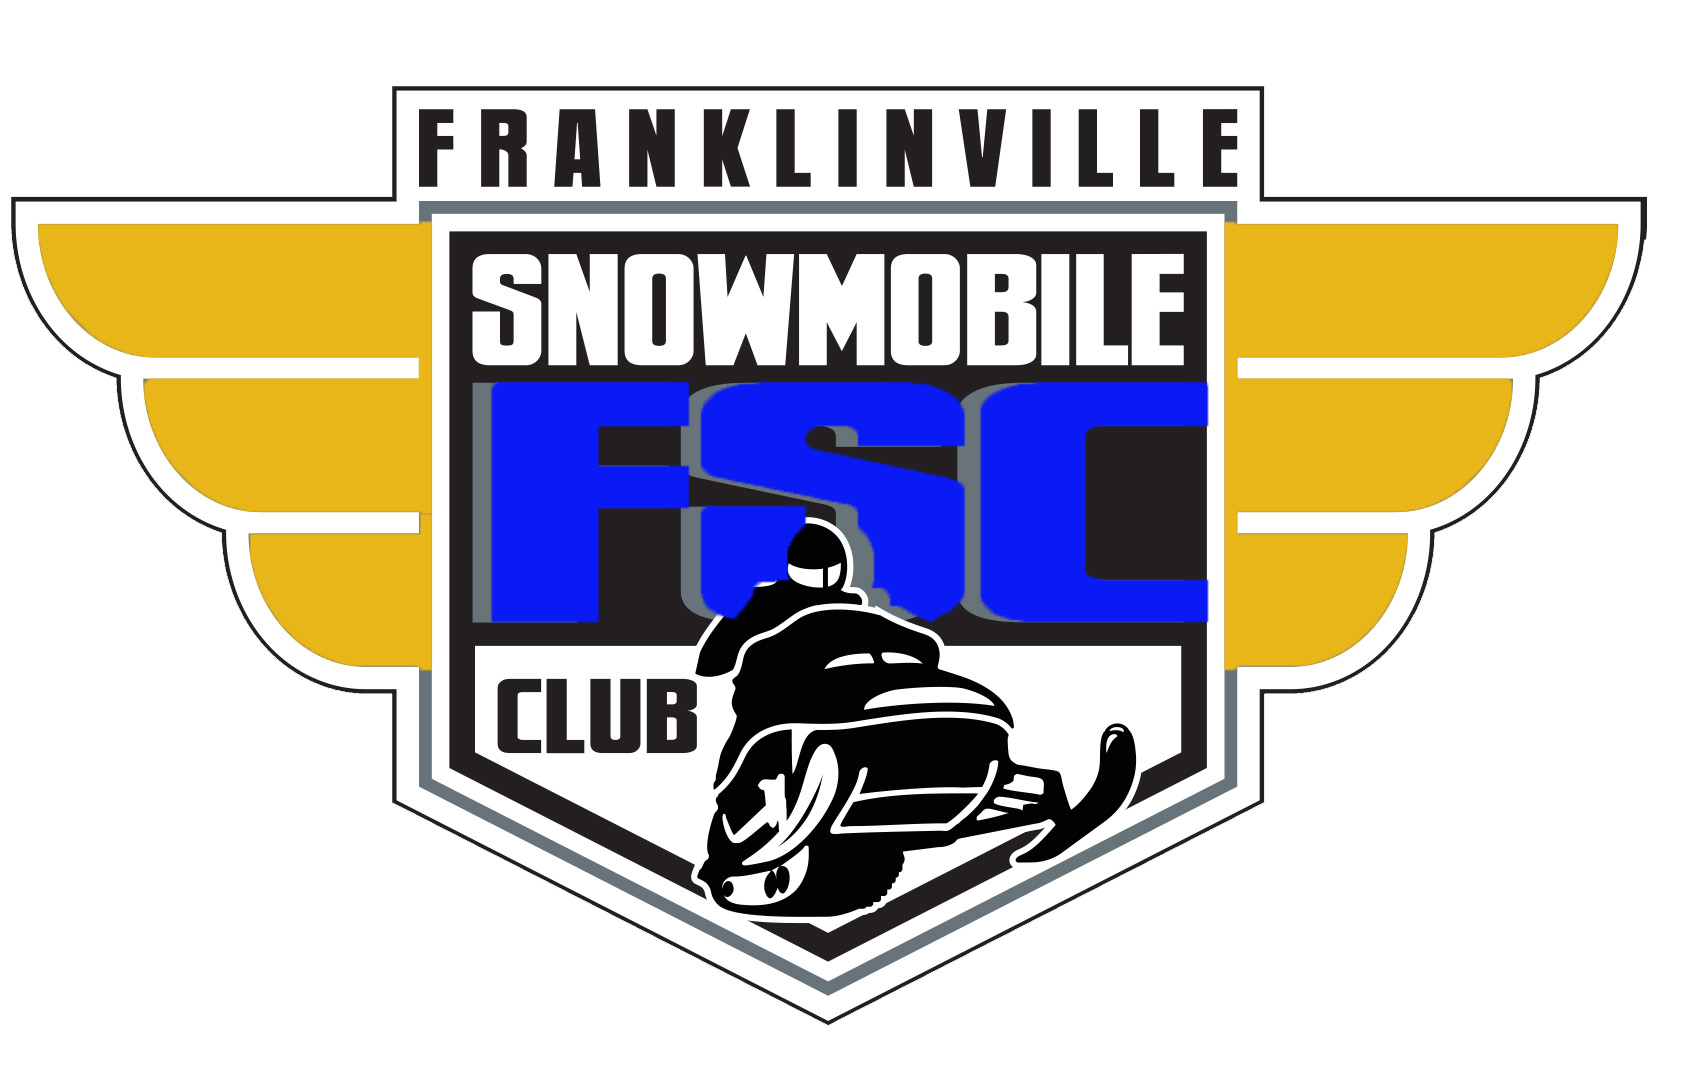 Franklinville Snowmobile Club